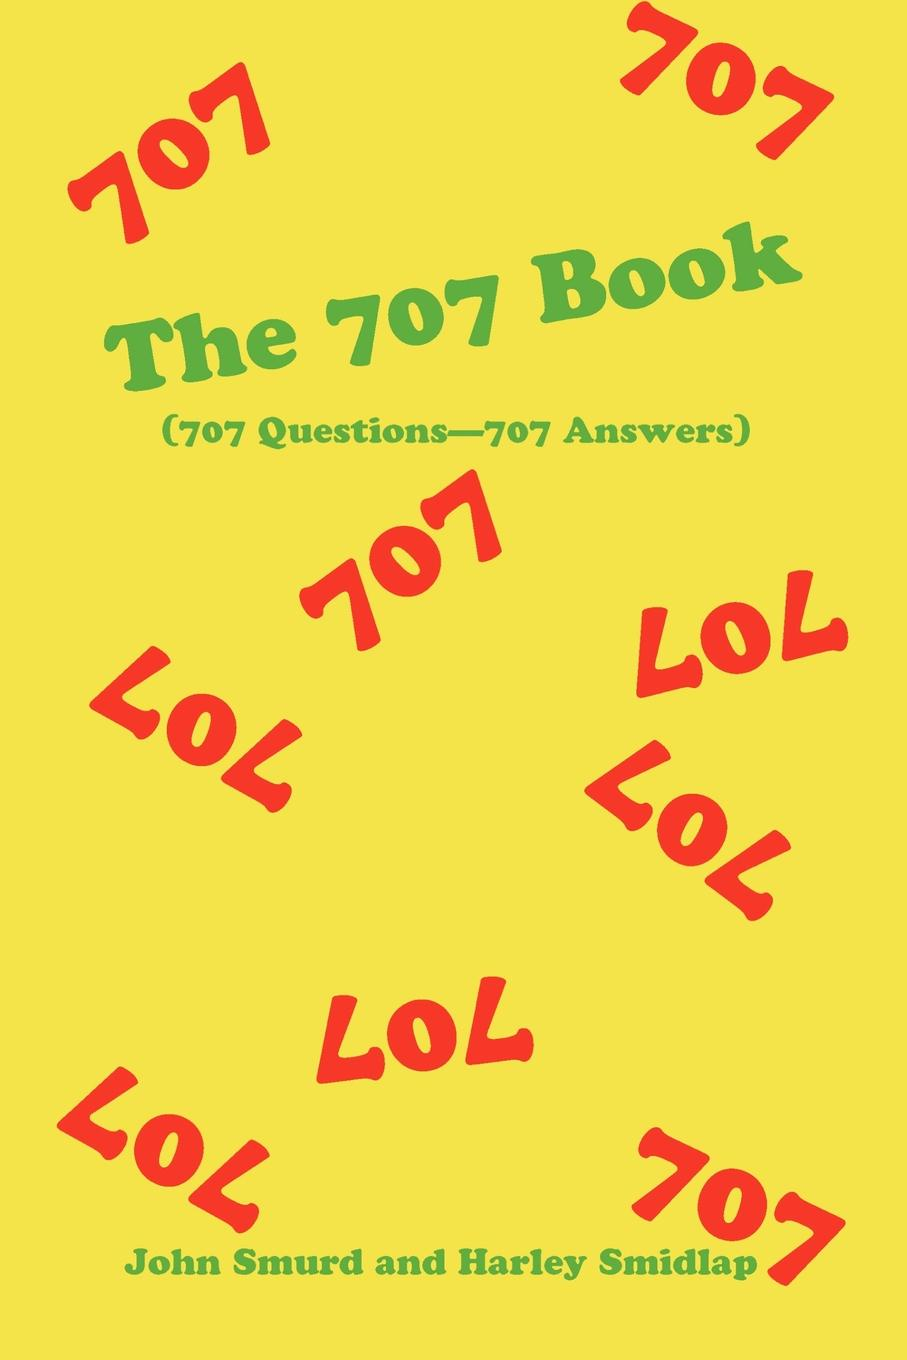 John Smurd, Harley Smidlap The 707 Book. (707 Questions-707 Answers) prinnie mccourt questions no answers